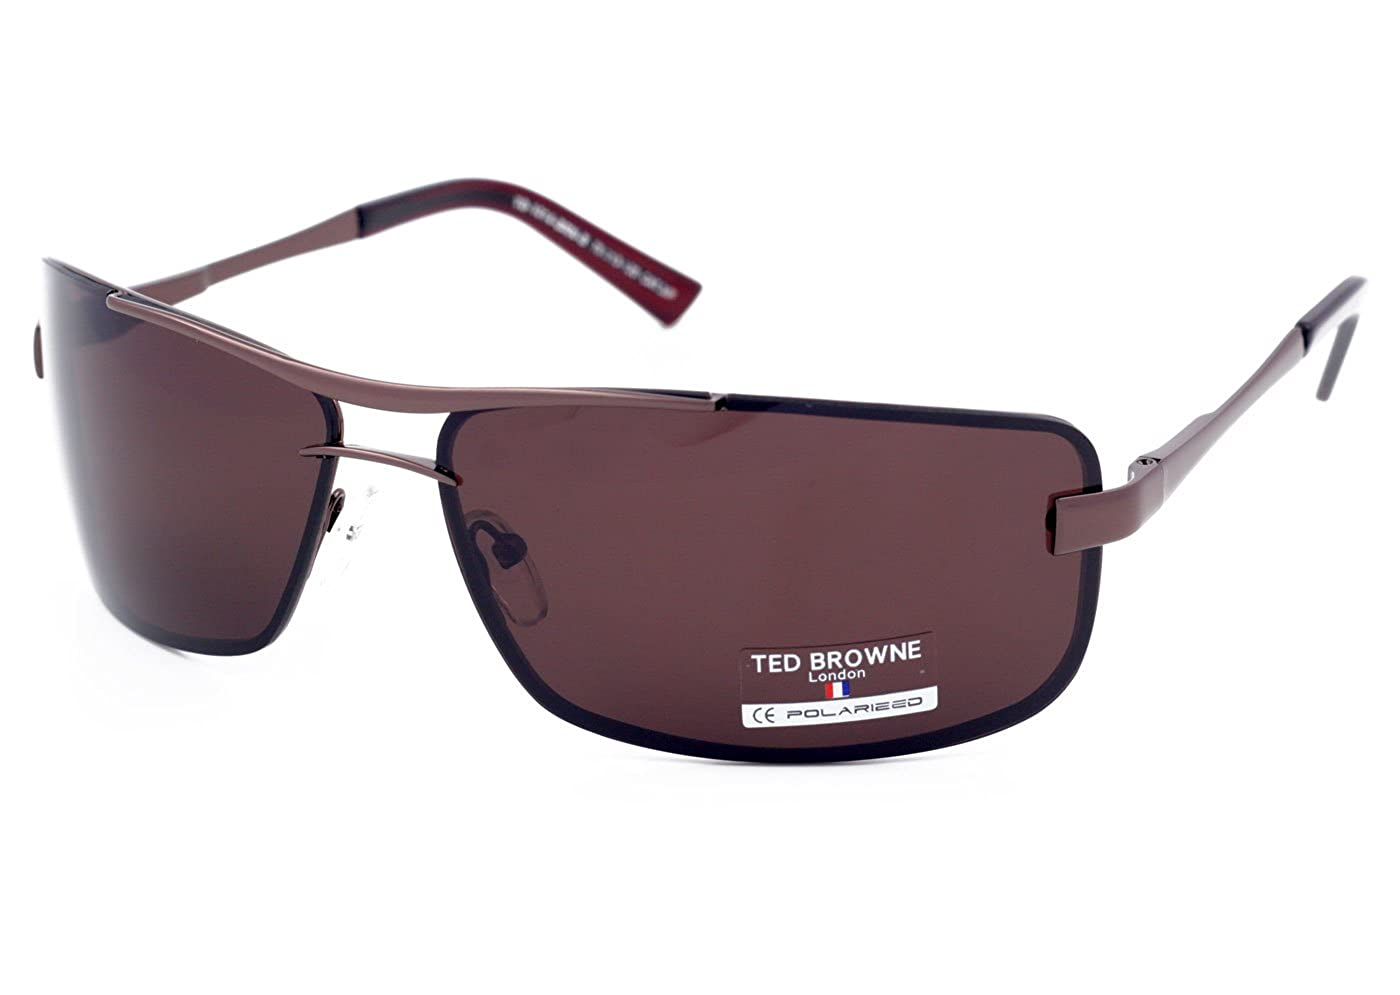 7afd06e3900 TED BROWNE London Polarised Sunglasses for Man Car Driving Cycling Fishing  Sport Big Face EyeWear Large Size Stop Glare Light Brown Lenses